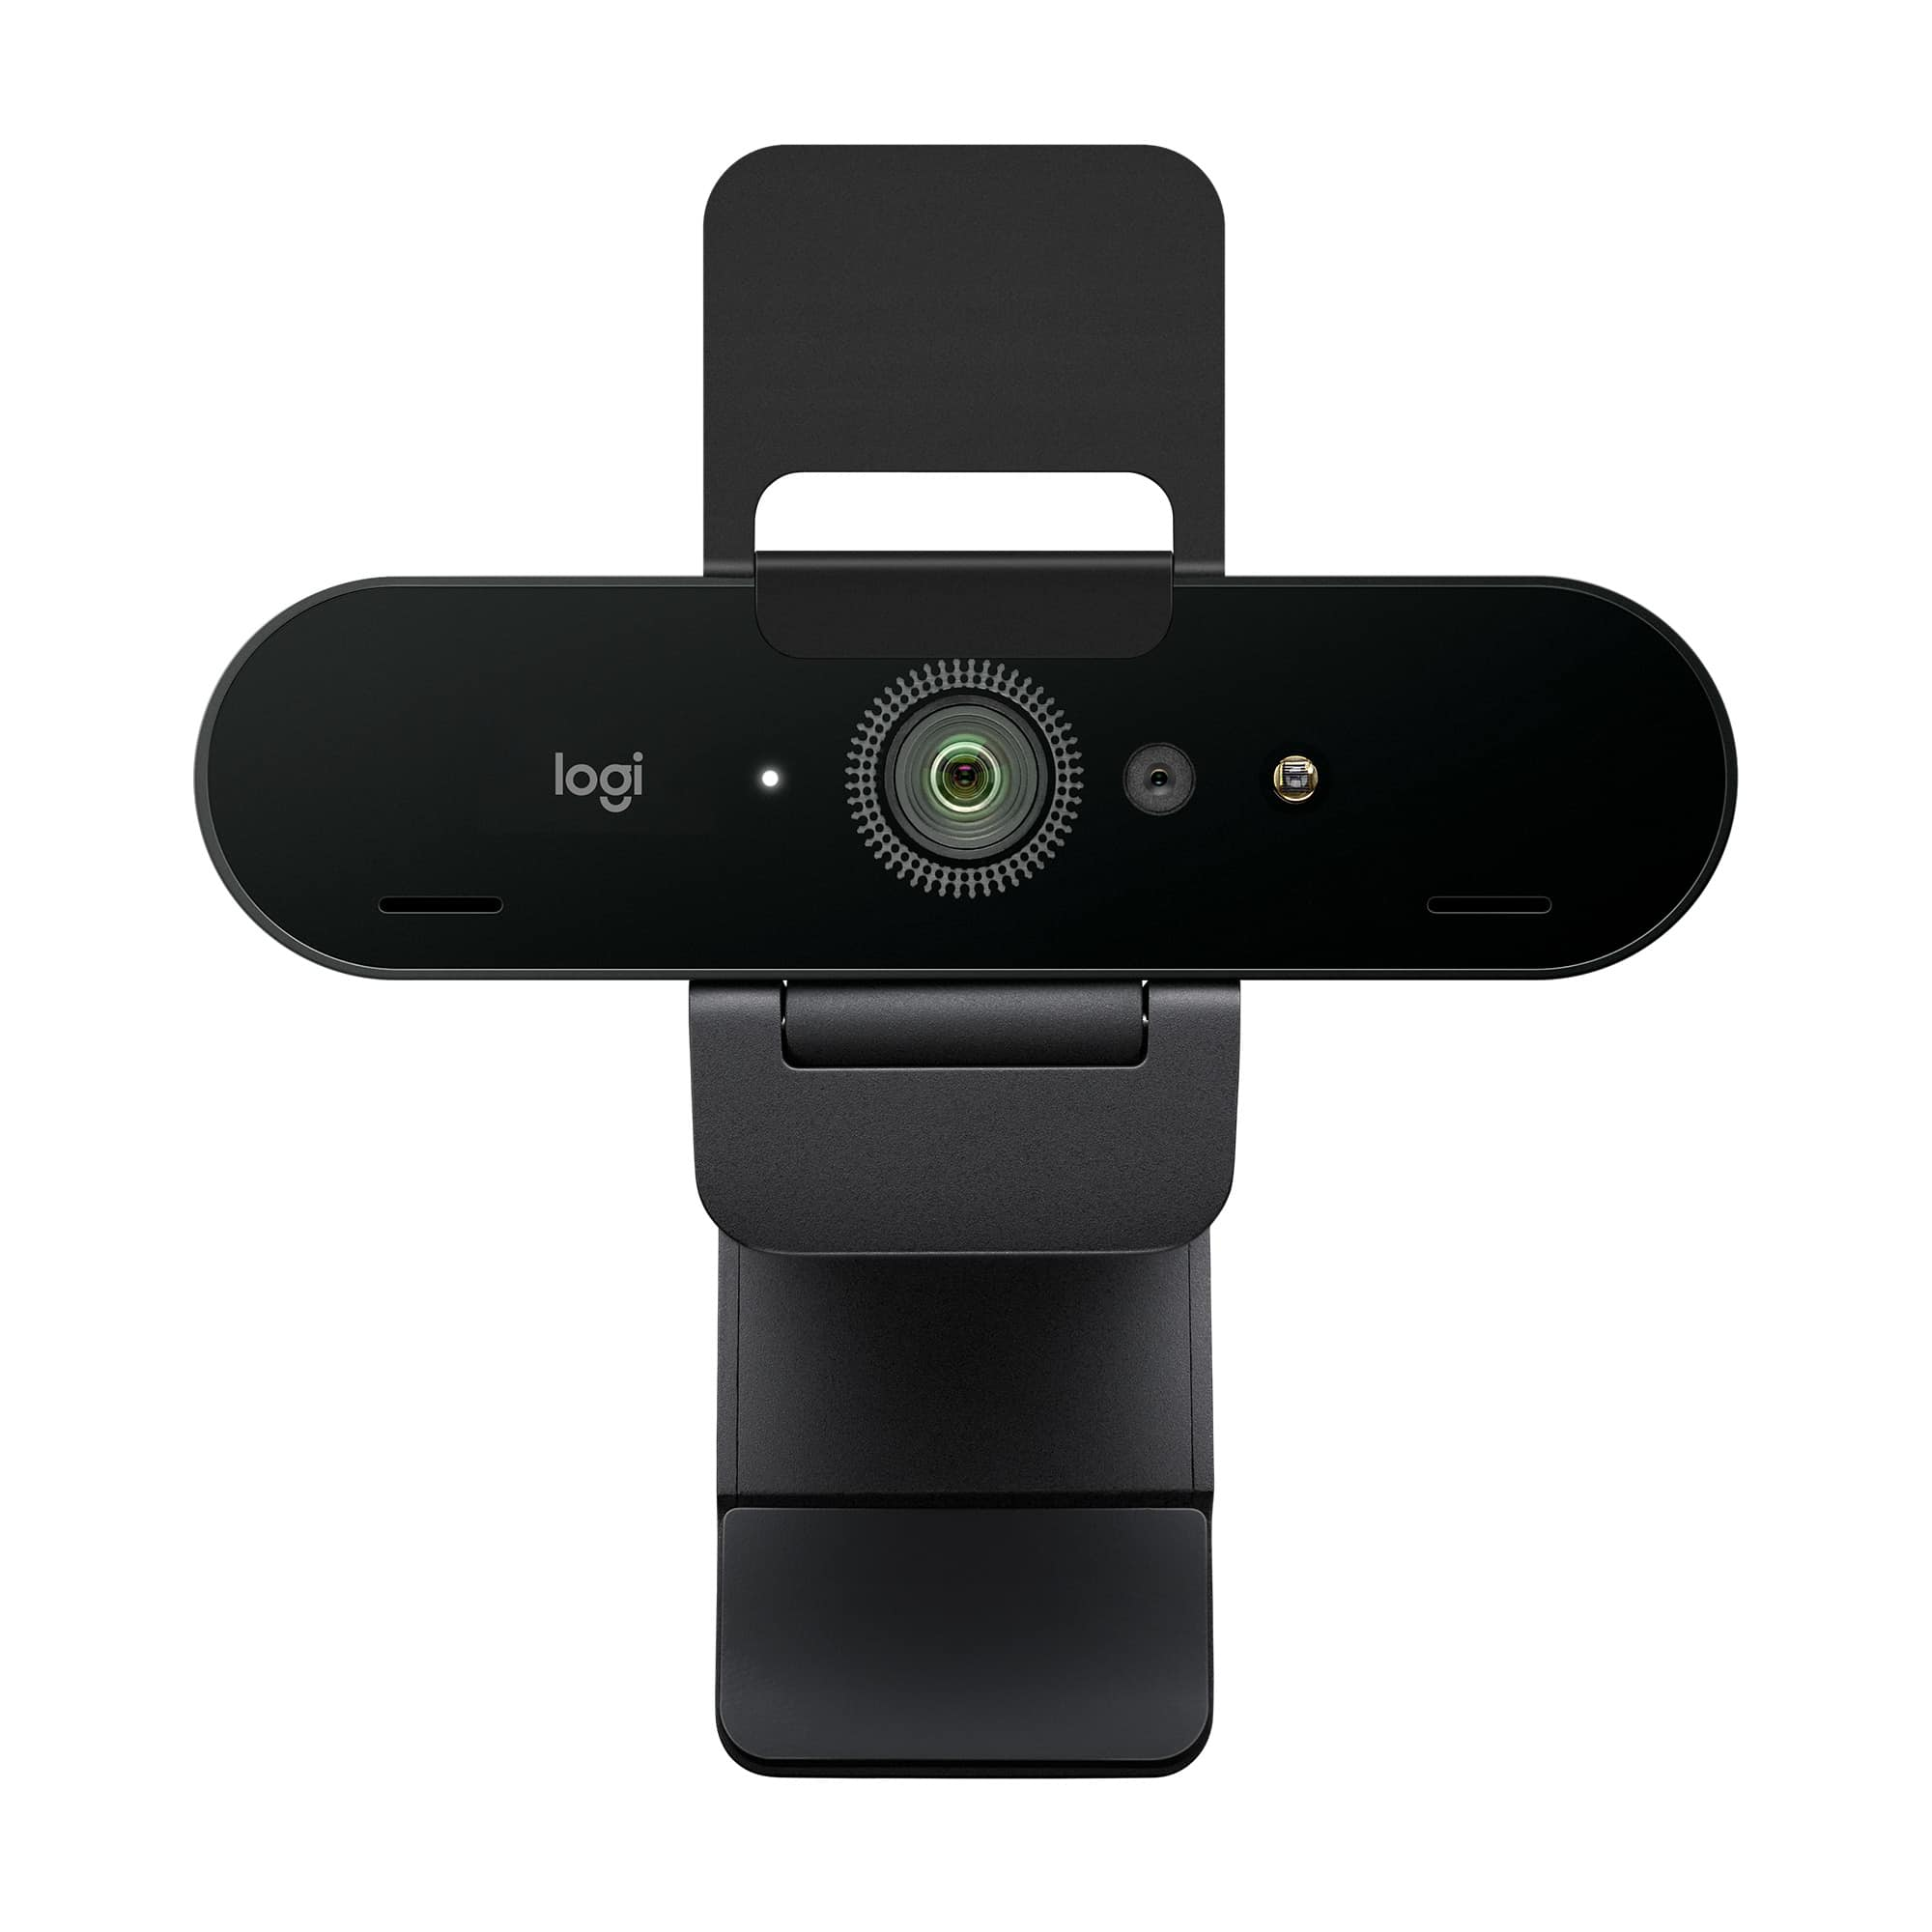 Logitech Brio 4k Stream Edition Webcam digitaler 5-fach-Zoom Full-HD Autofokus für 193,99 Euro